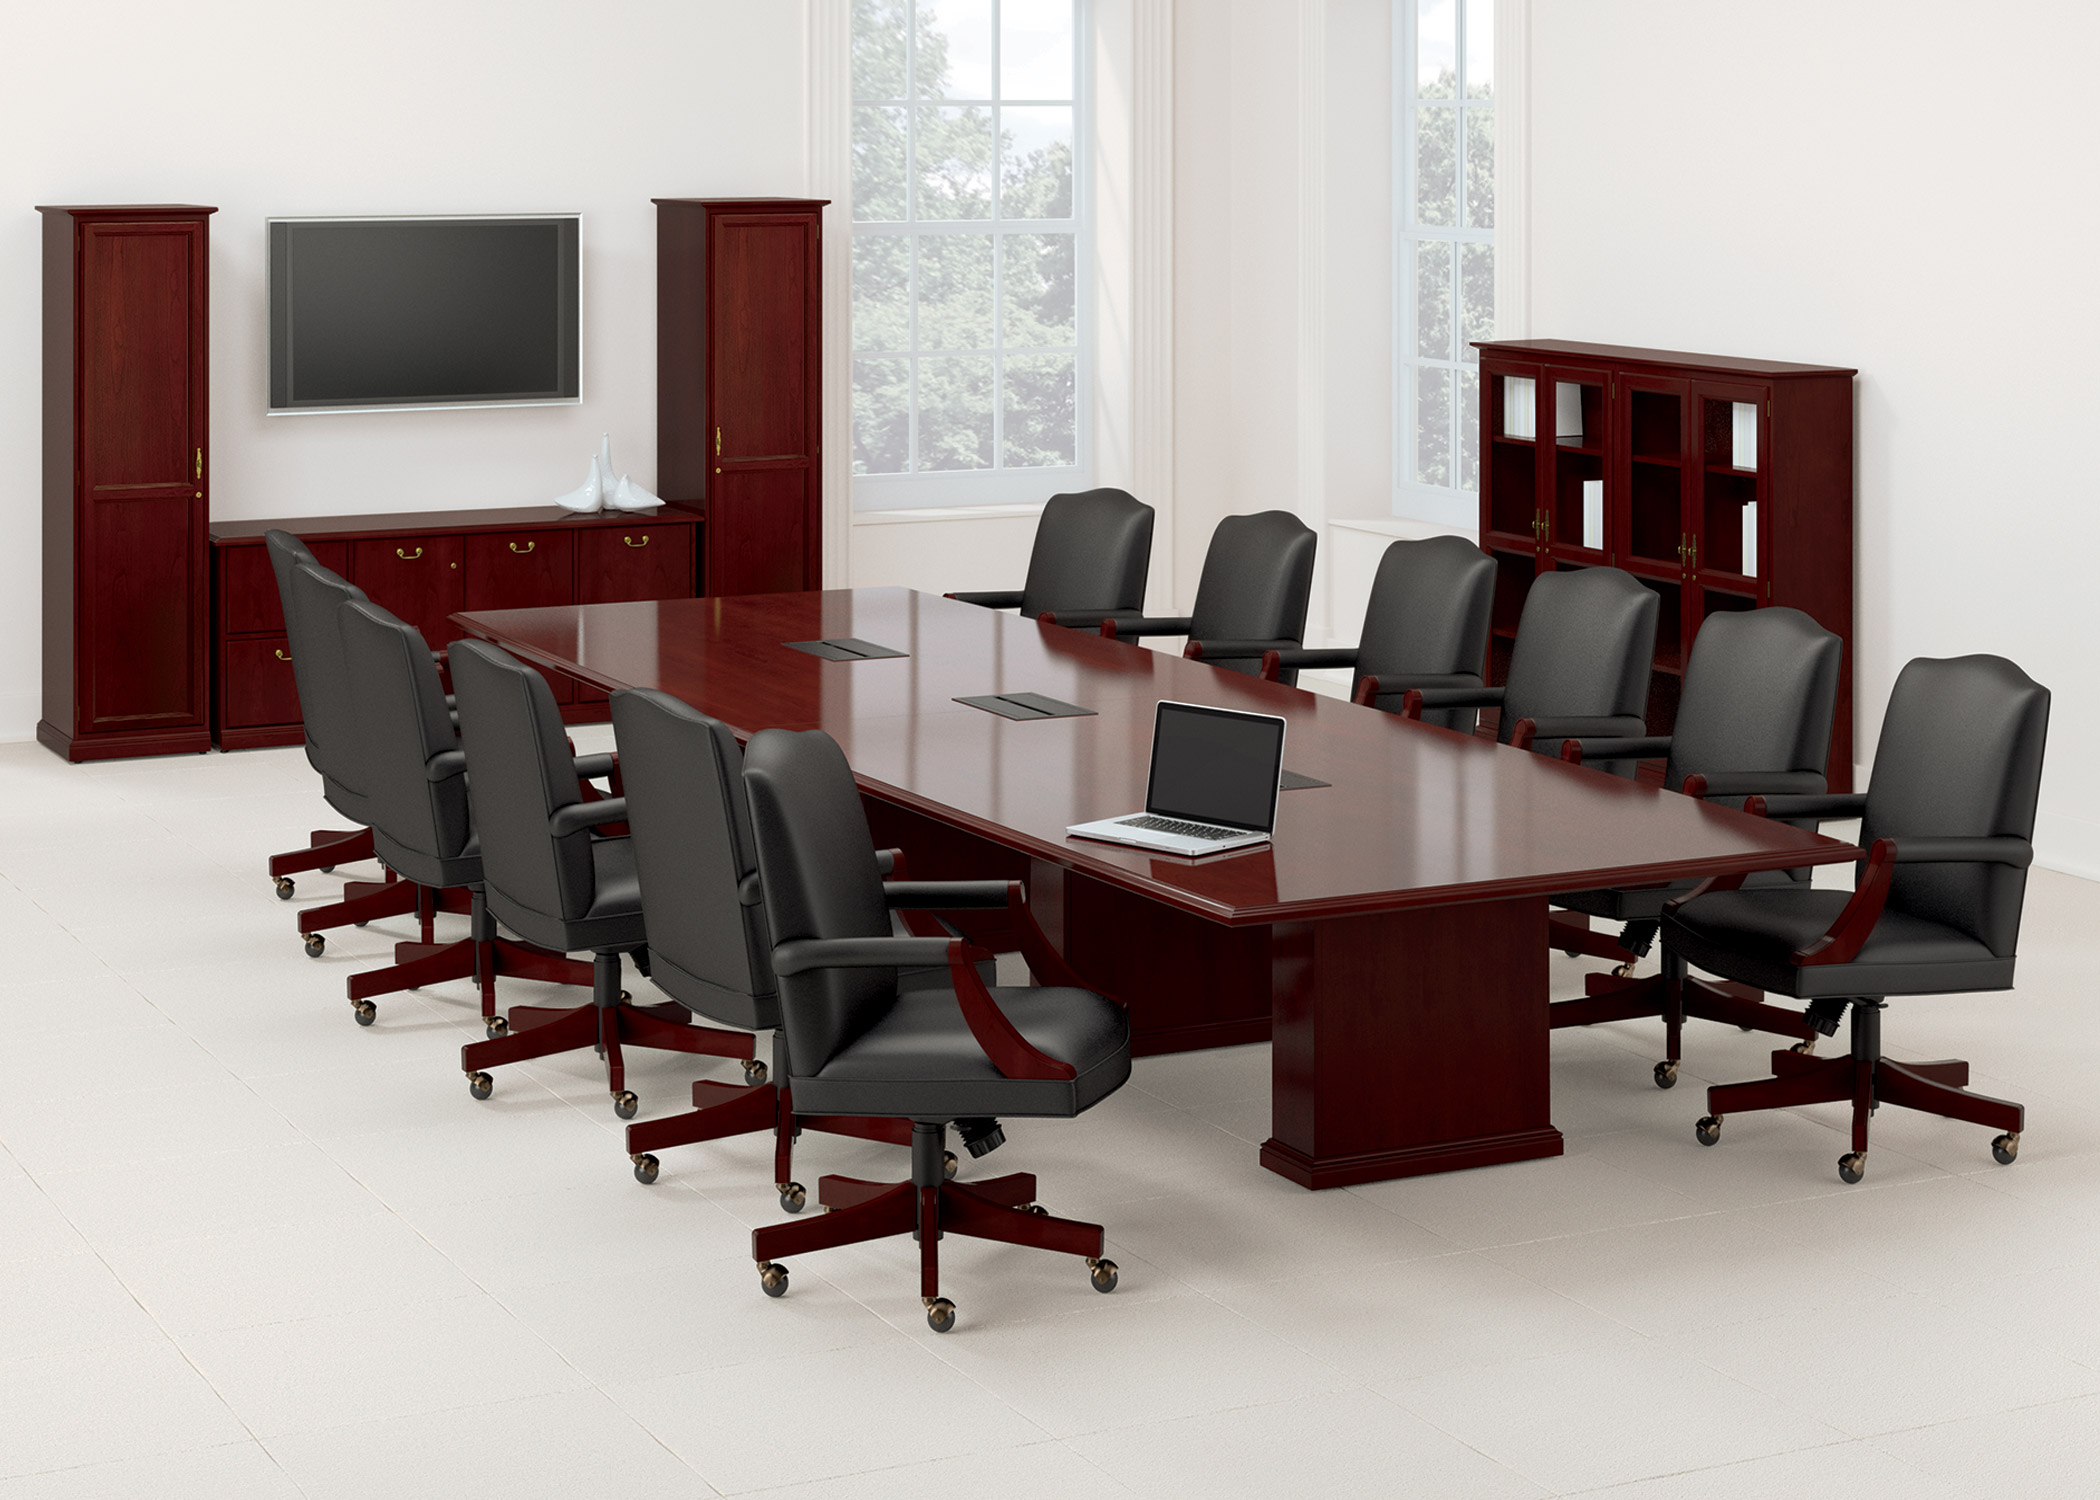 meeting room chairs eddie bauer high chair conference tables 10 styles to choose from ubiq